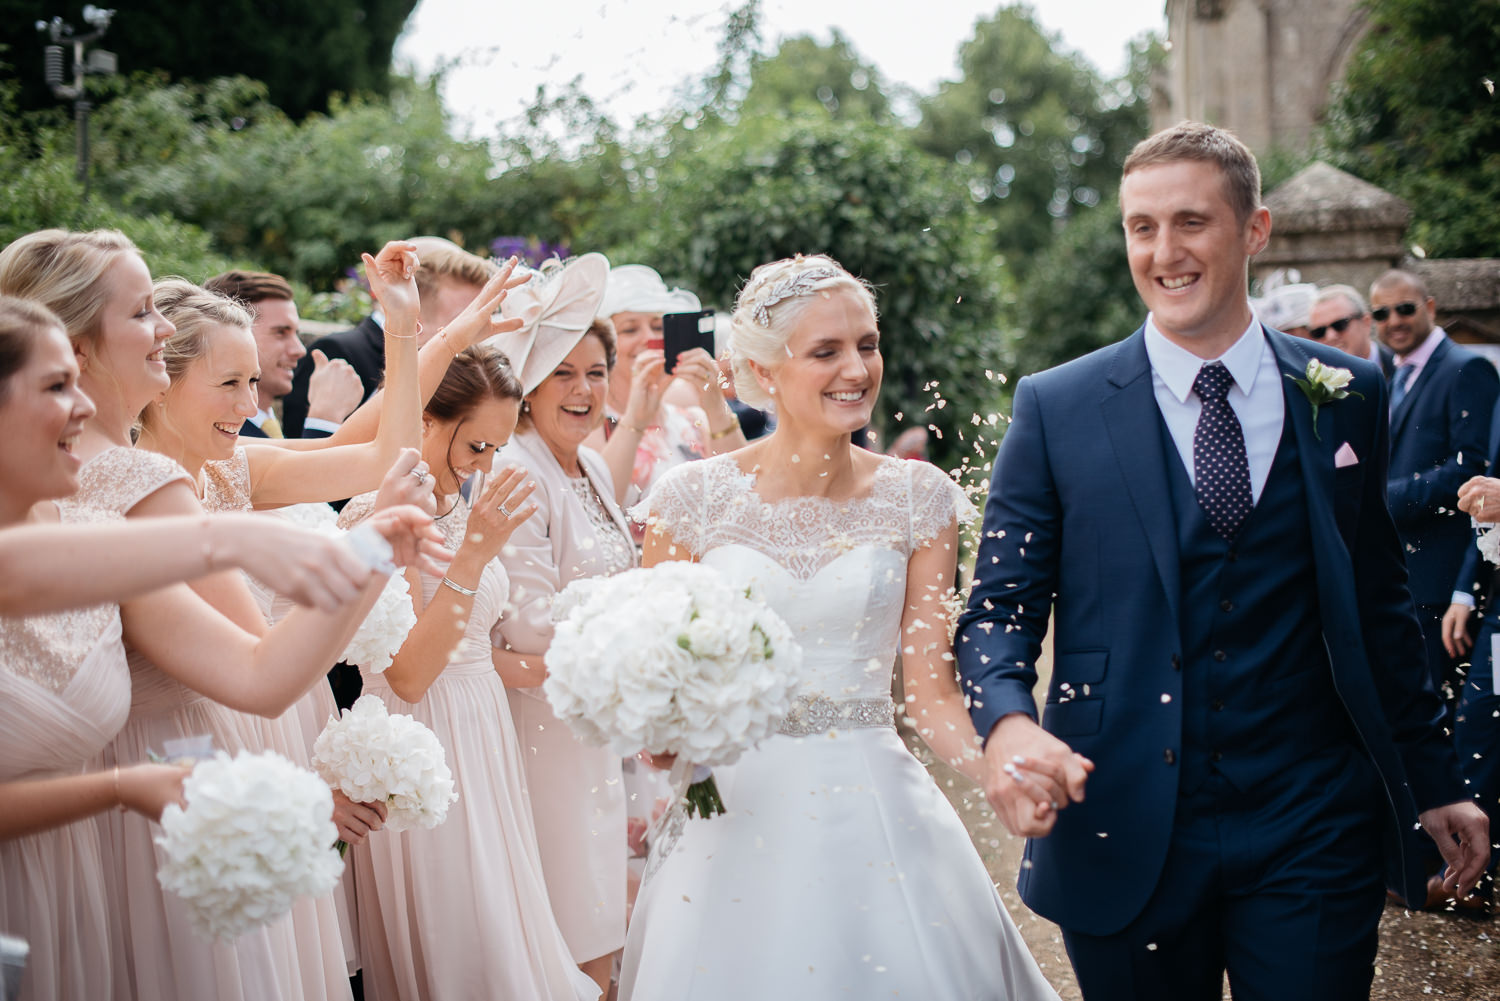 wedding guests throwing confetti over the bride and groom in Stamford